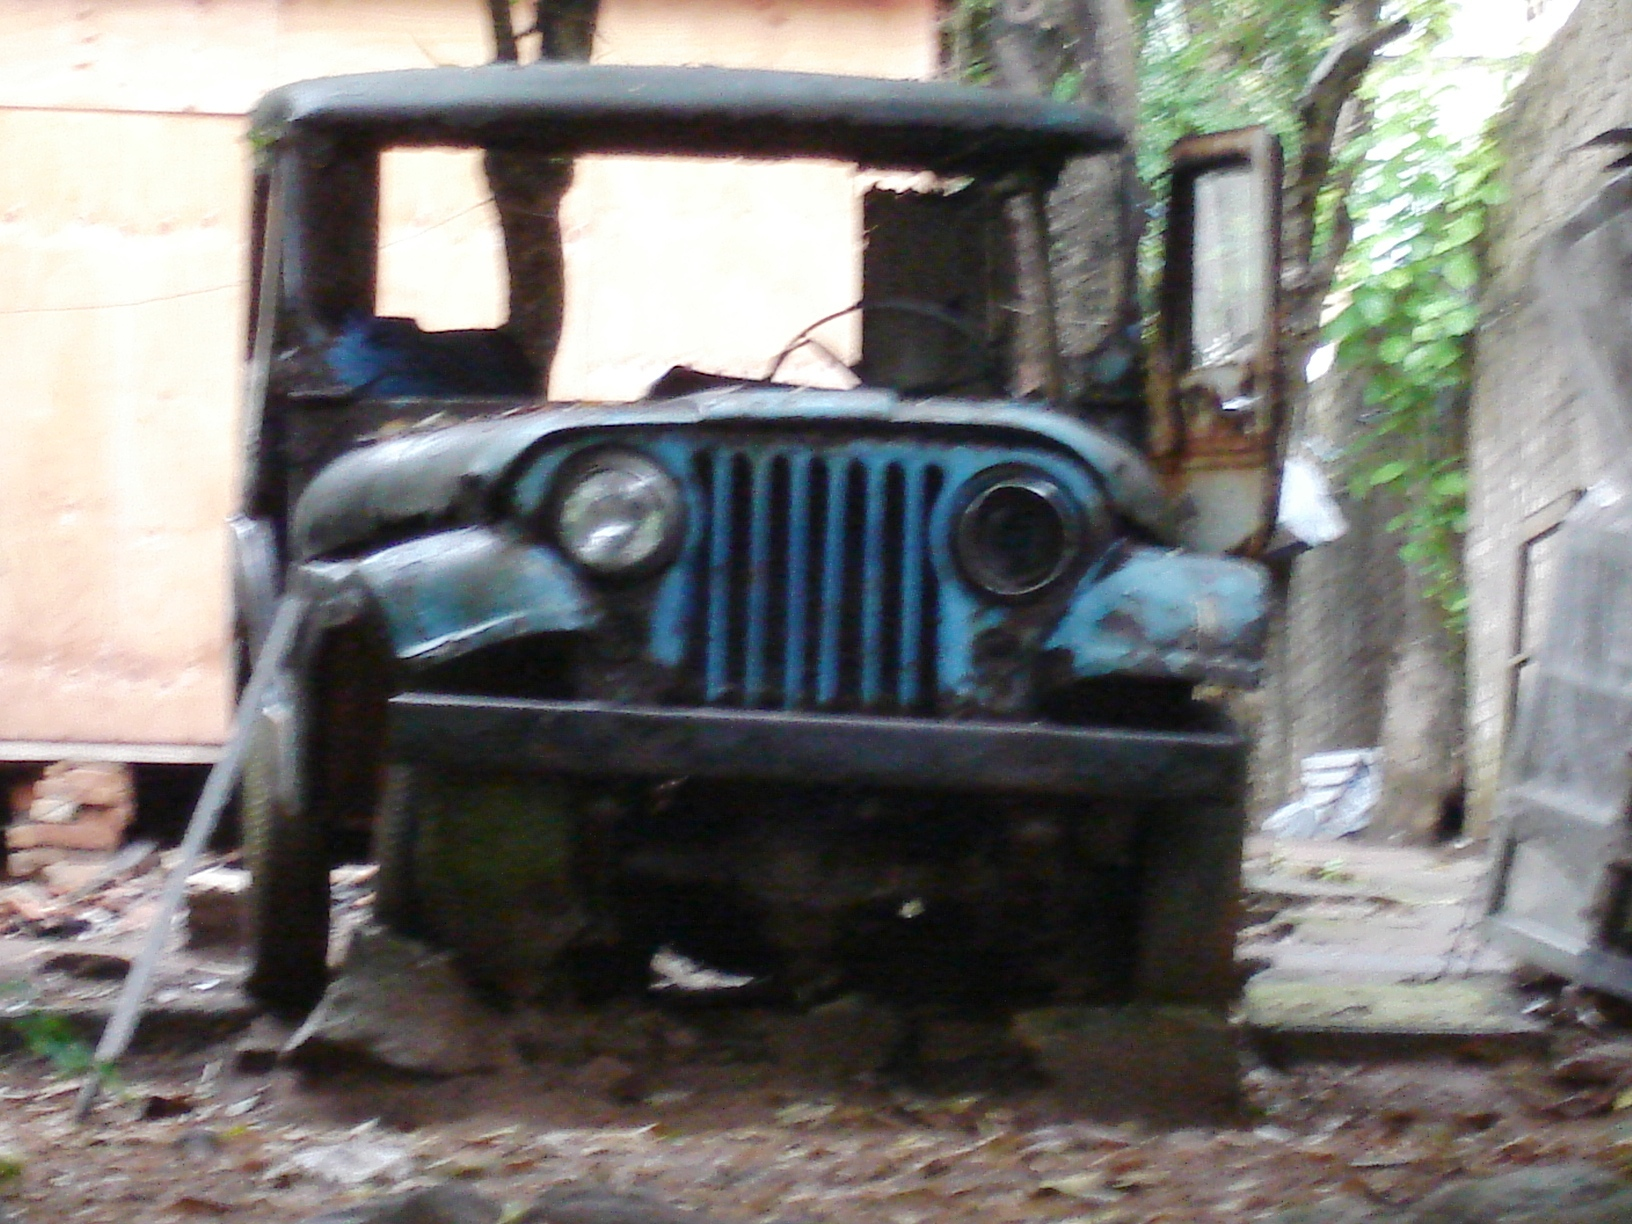 Umarcelokt Poa Jeep Willys